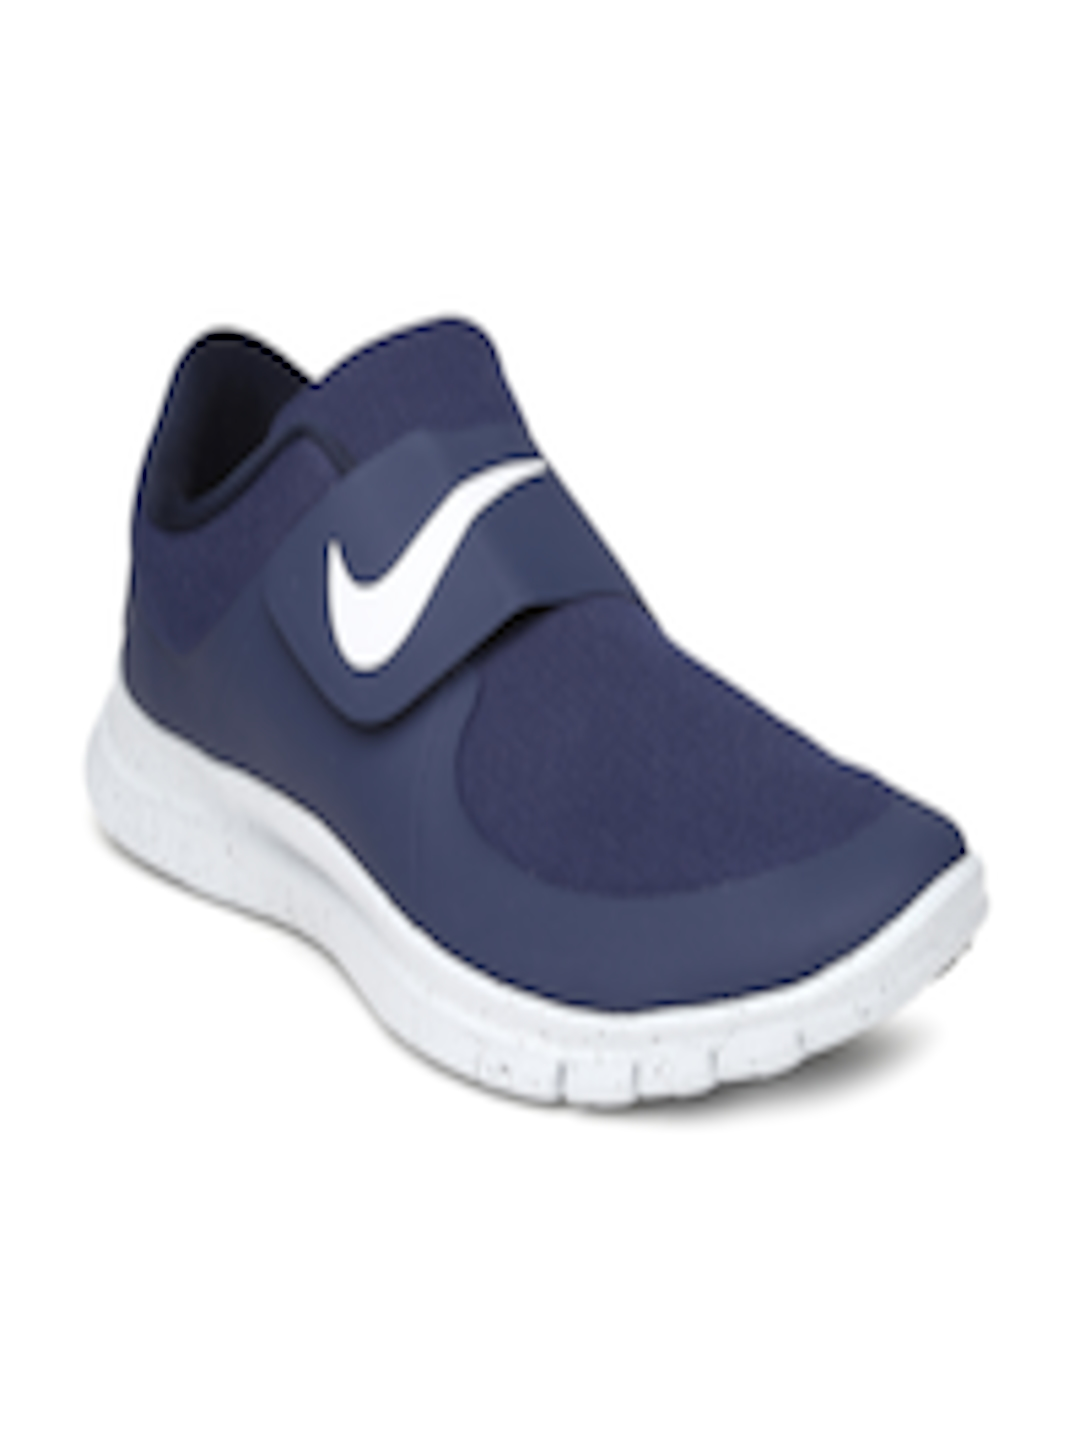 469b83f7dc86 Buy Nike Men Navy Free Socfly Casual Shoes - Casual Shoes for Men 857297